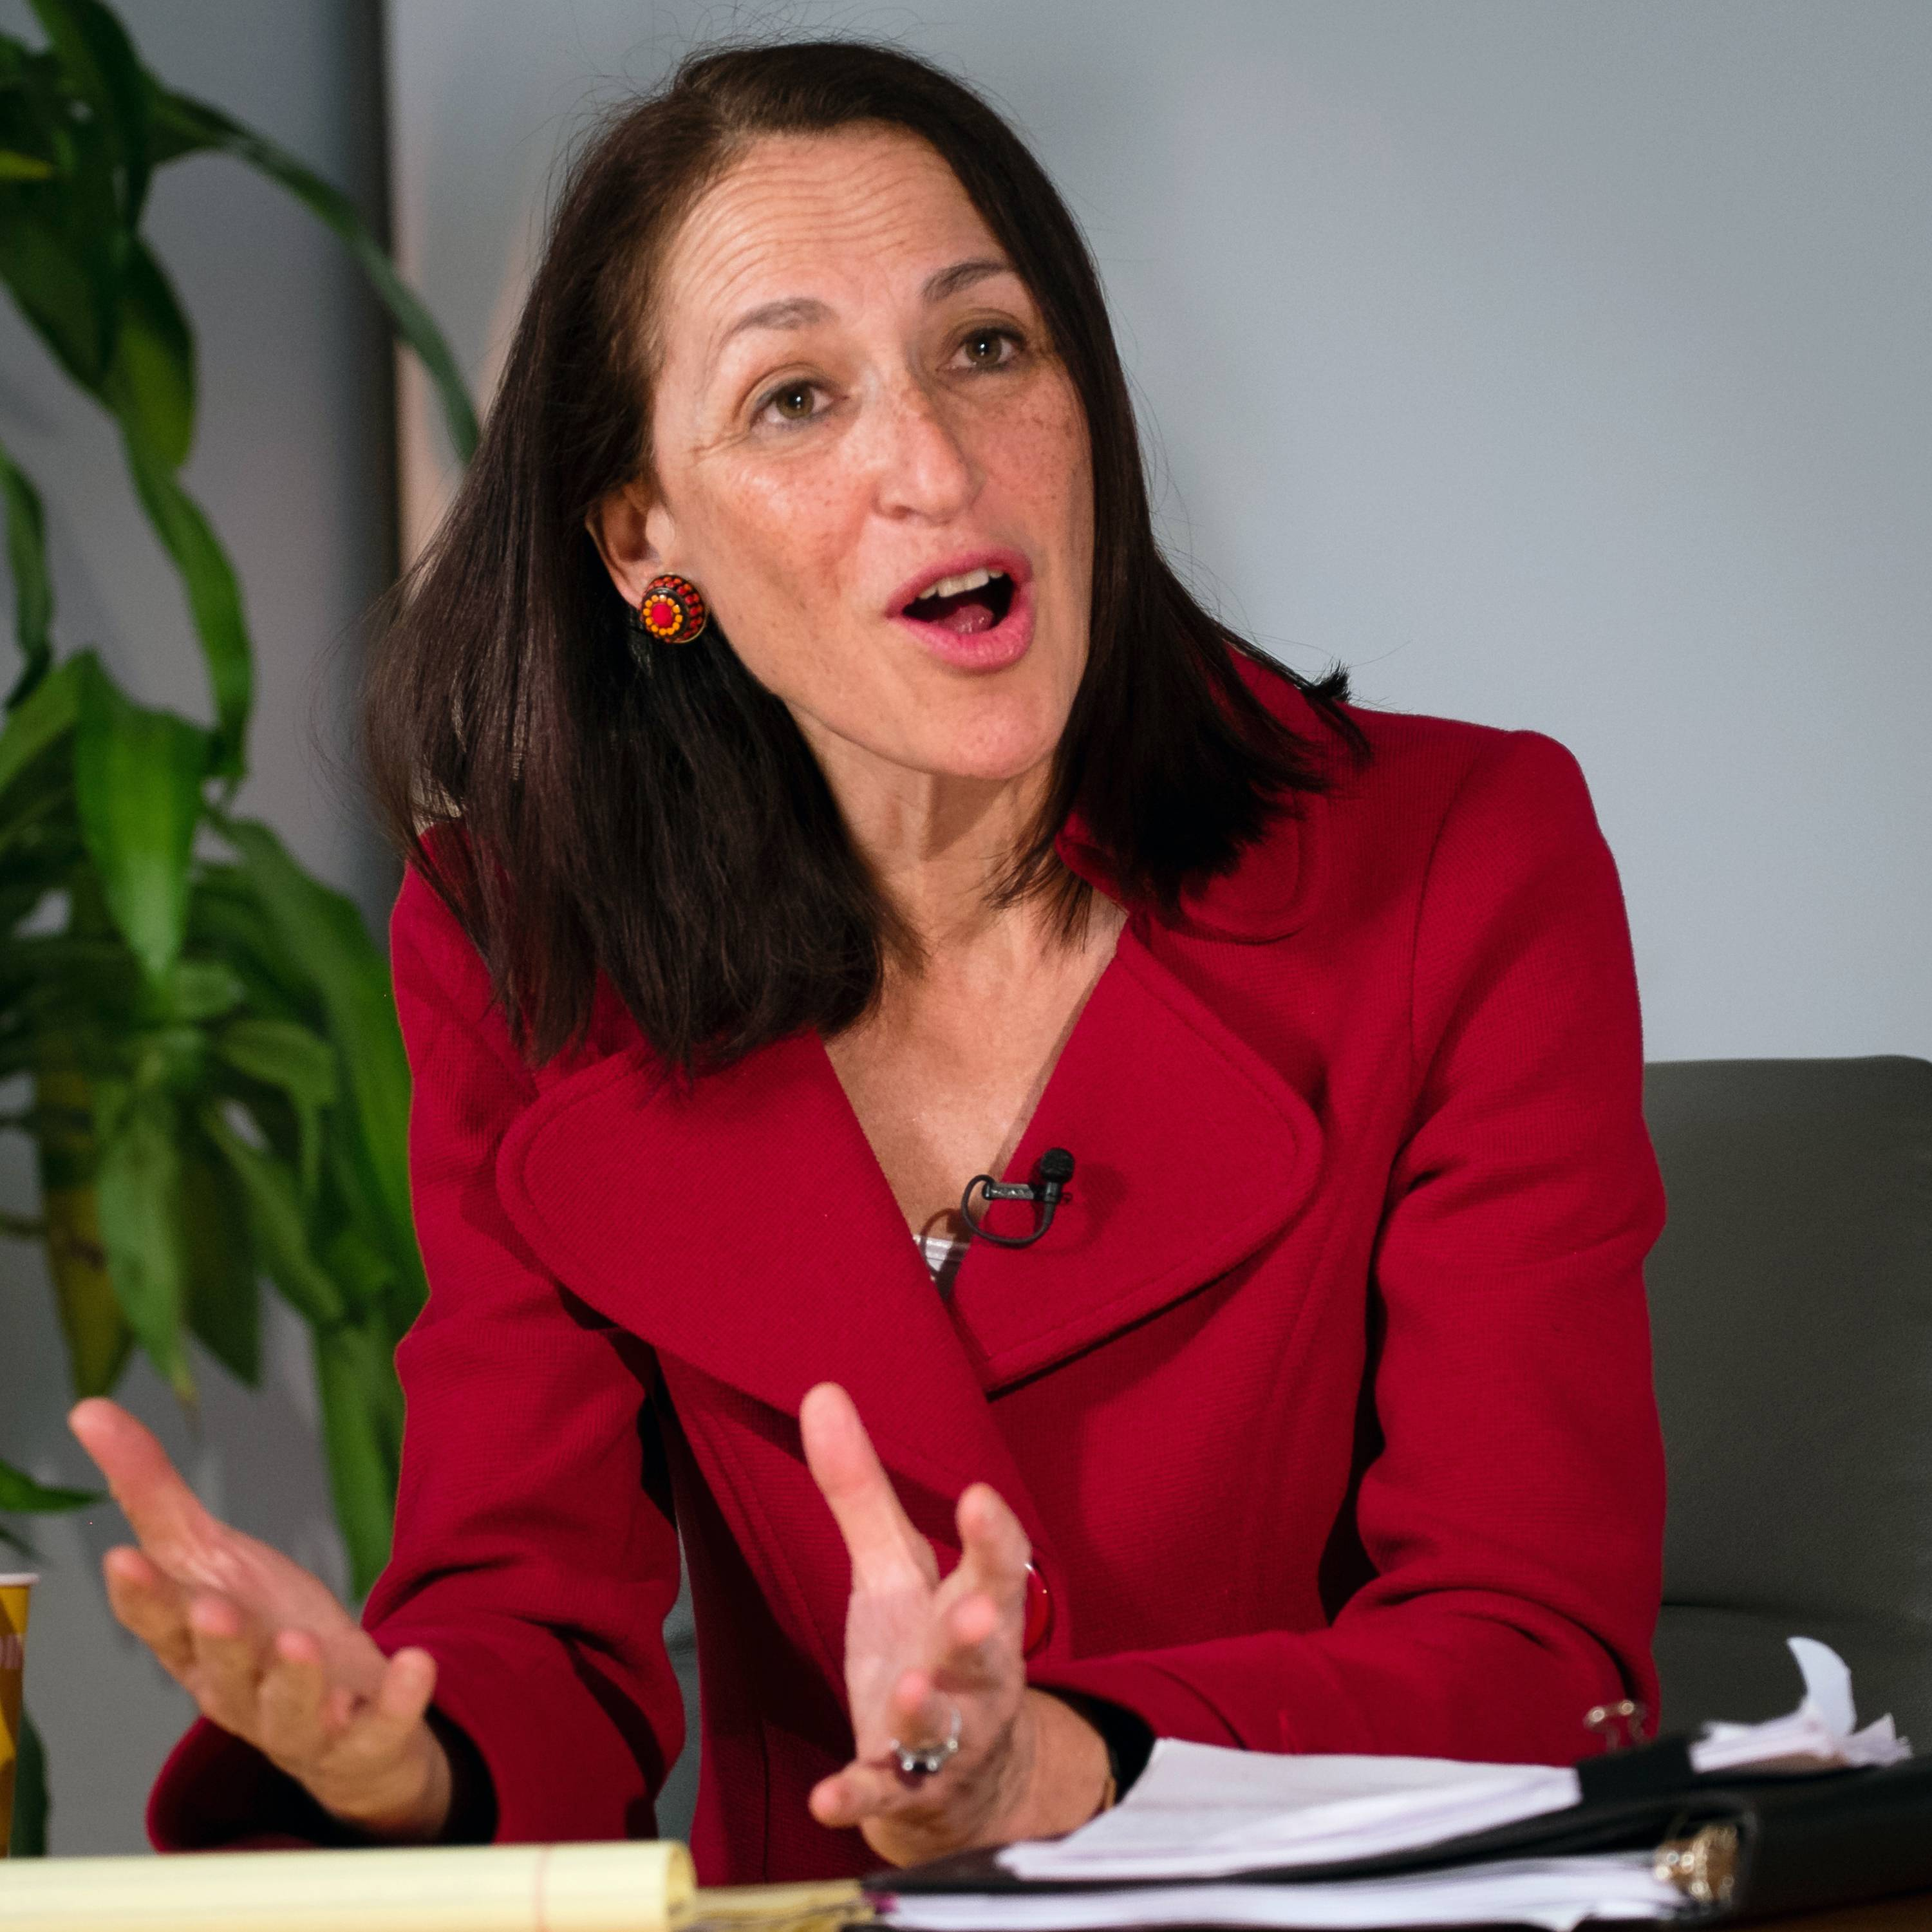 Food and Drug Administration (FDA) Commissioner Dr. Margaret Hamburg answers questions Friday during a newsmaker interview at the Associated Press offices in Washington.